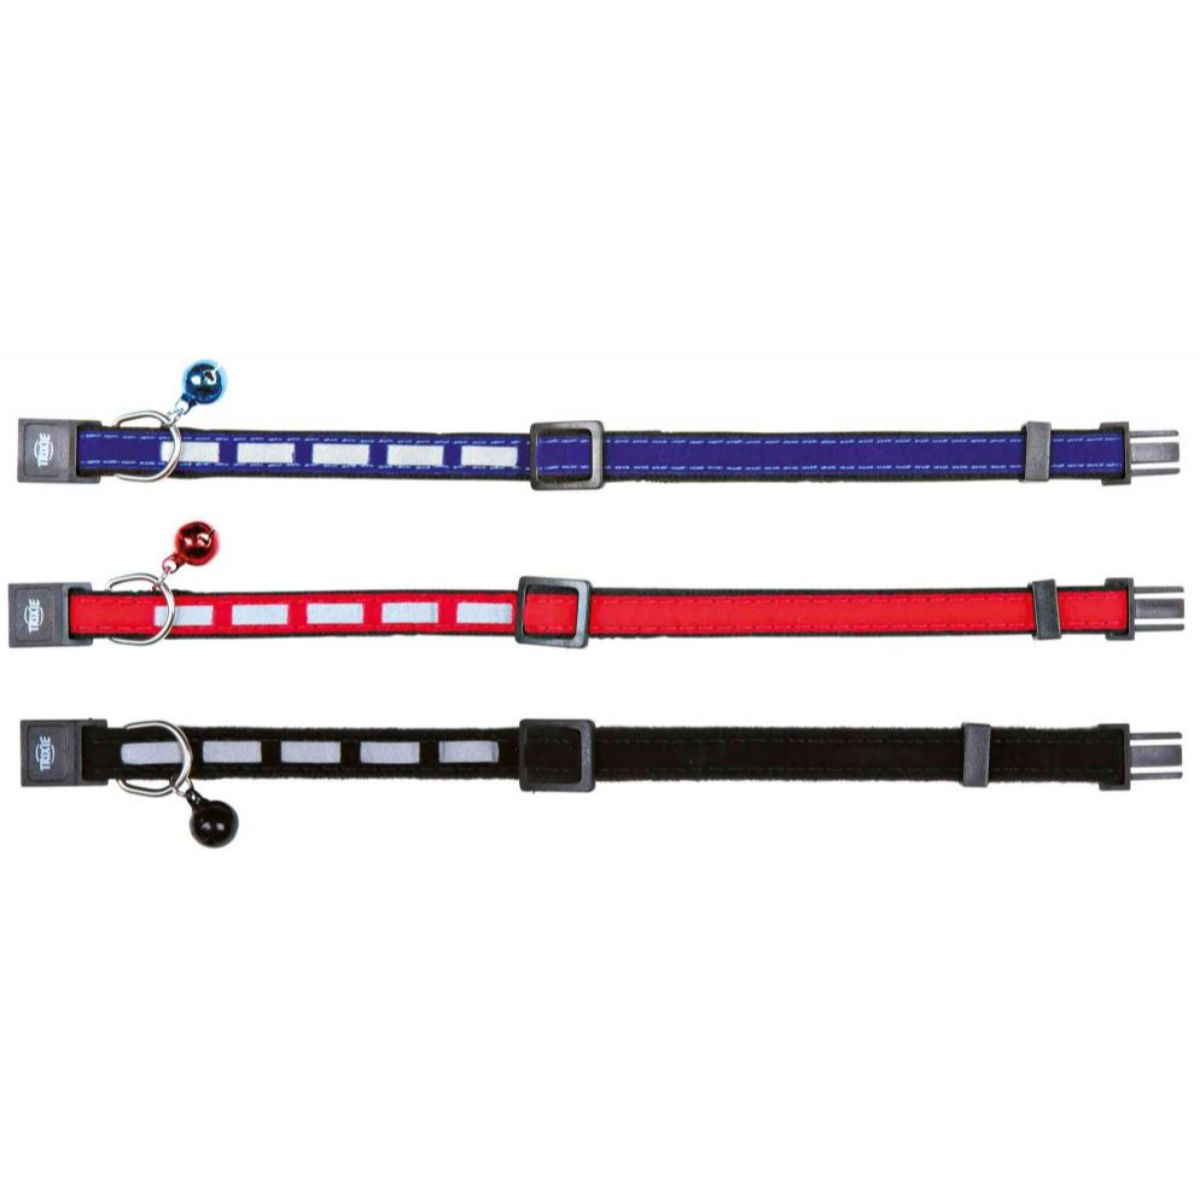 Trixie Safer Life Cat Reflective Collar With Bell - Assorted